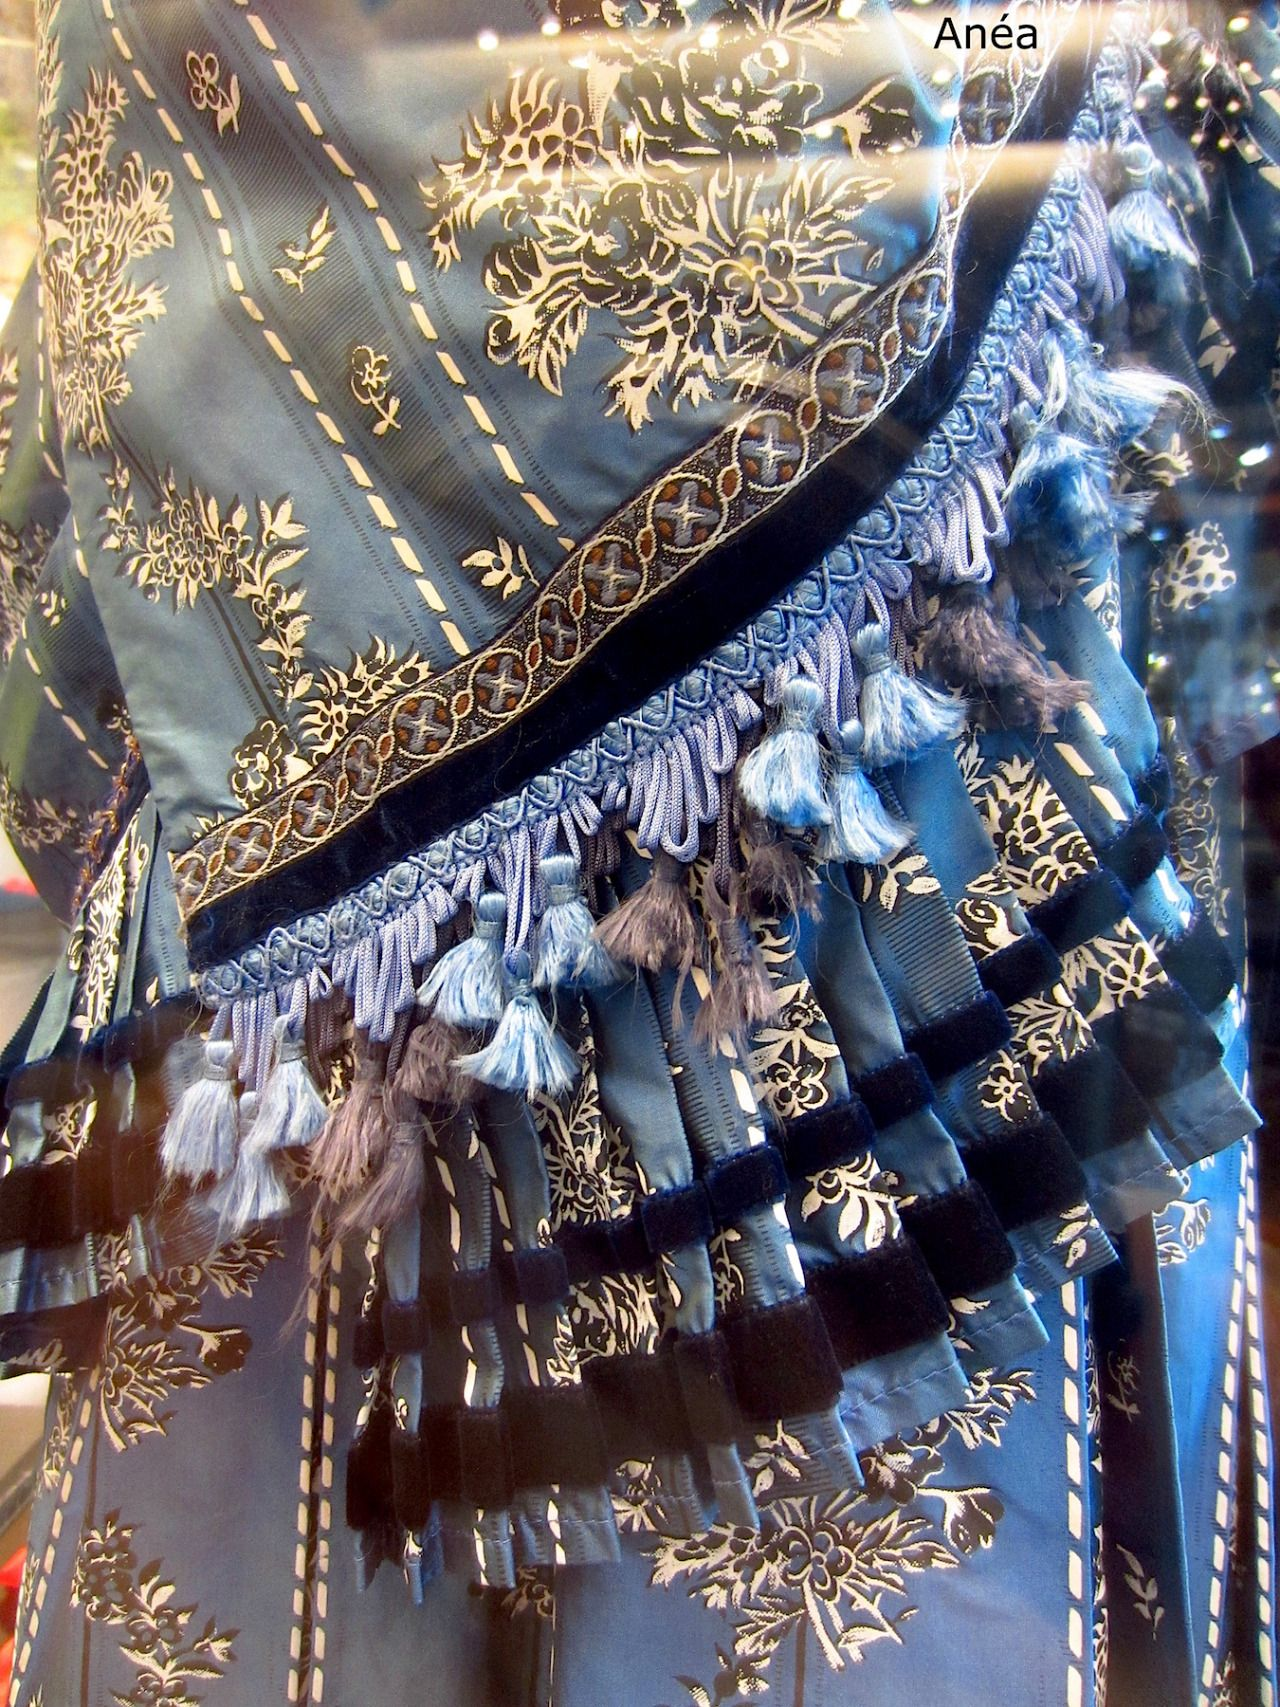 So beautiful! I hope to wear these costumes on stage one day...